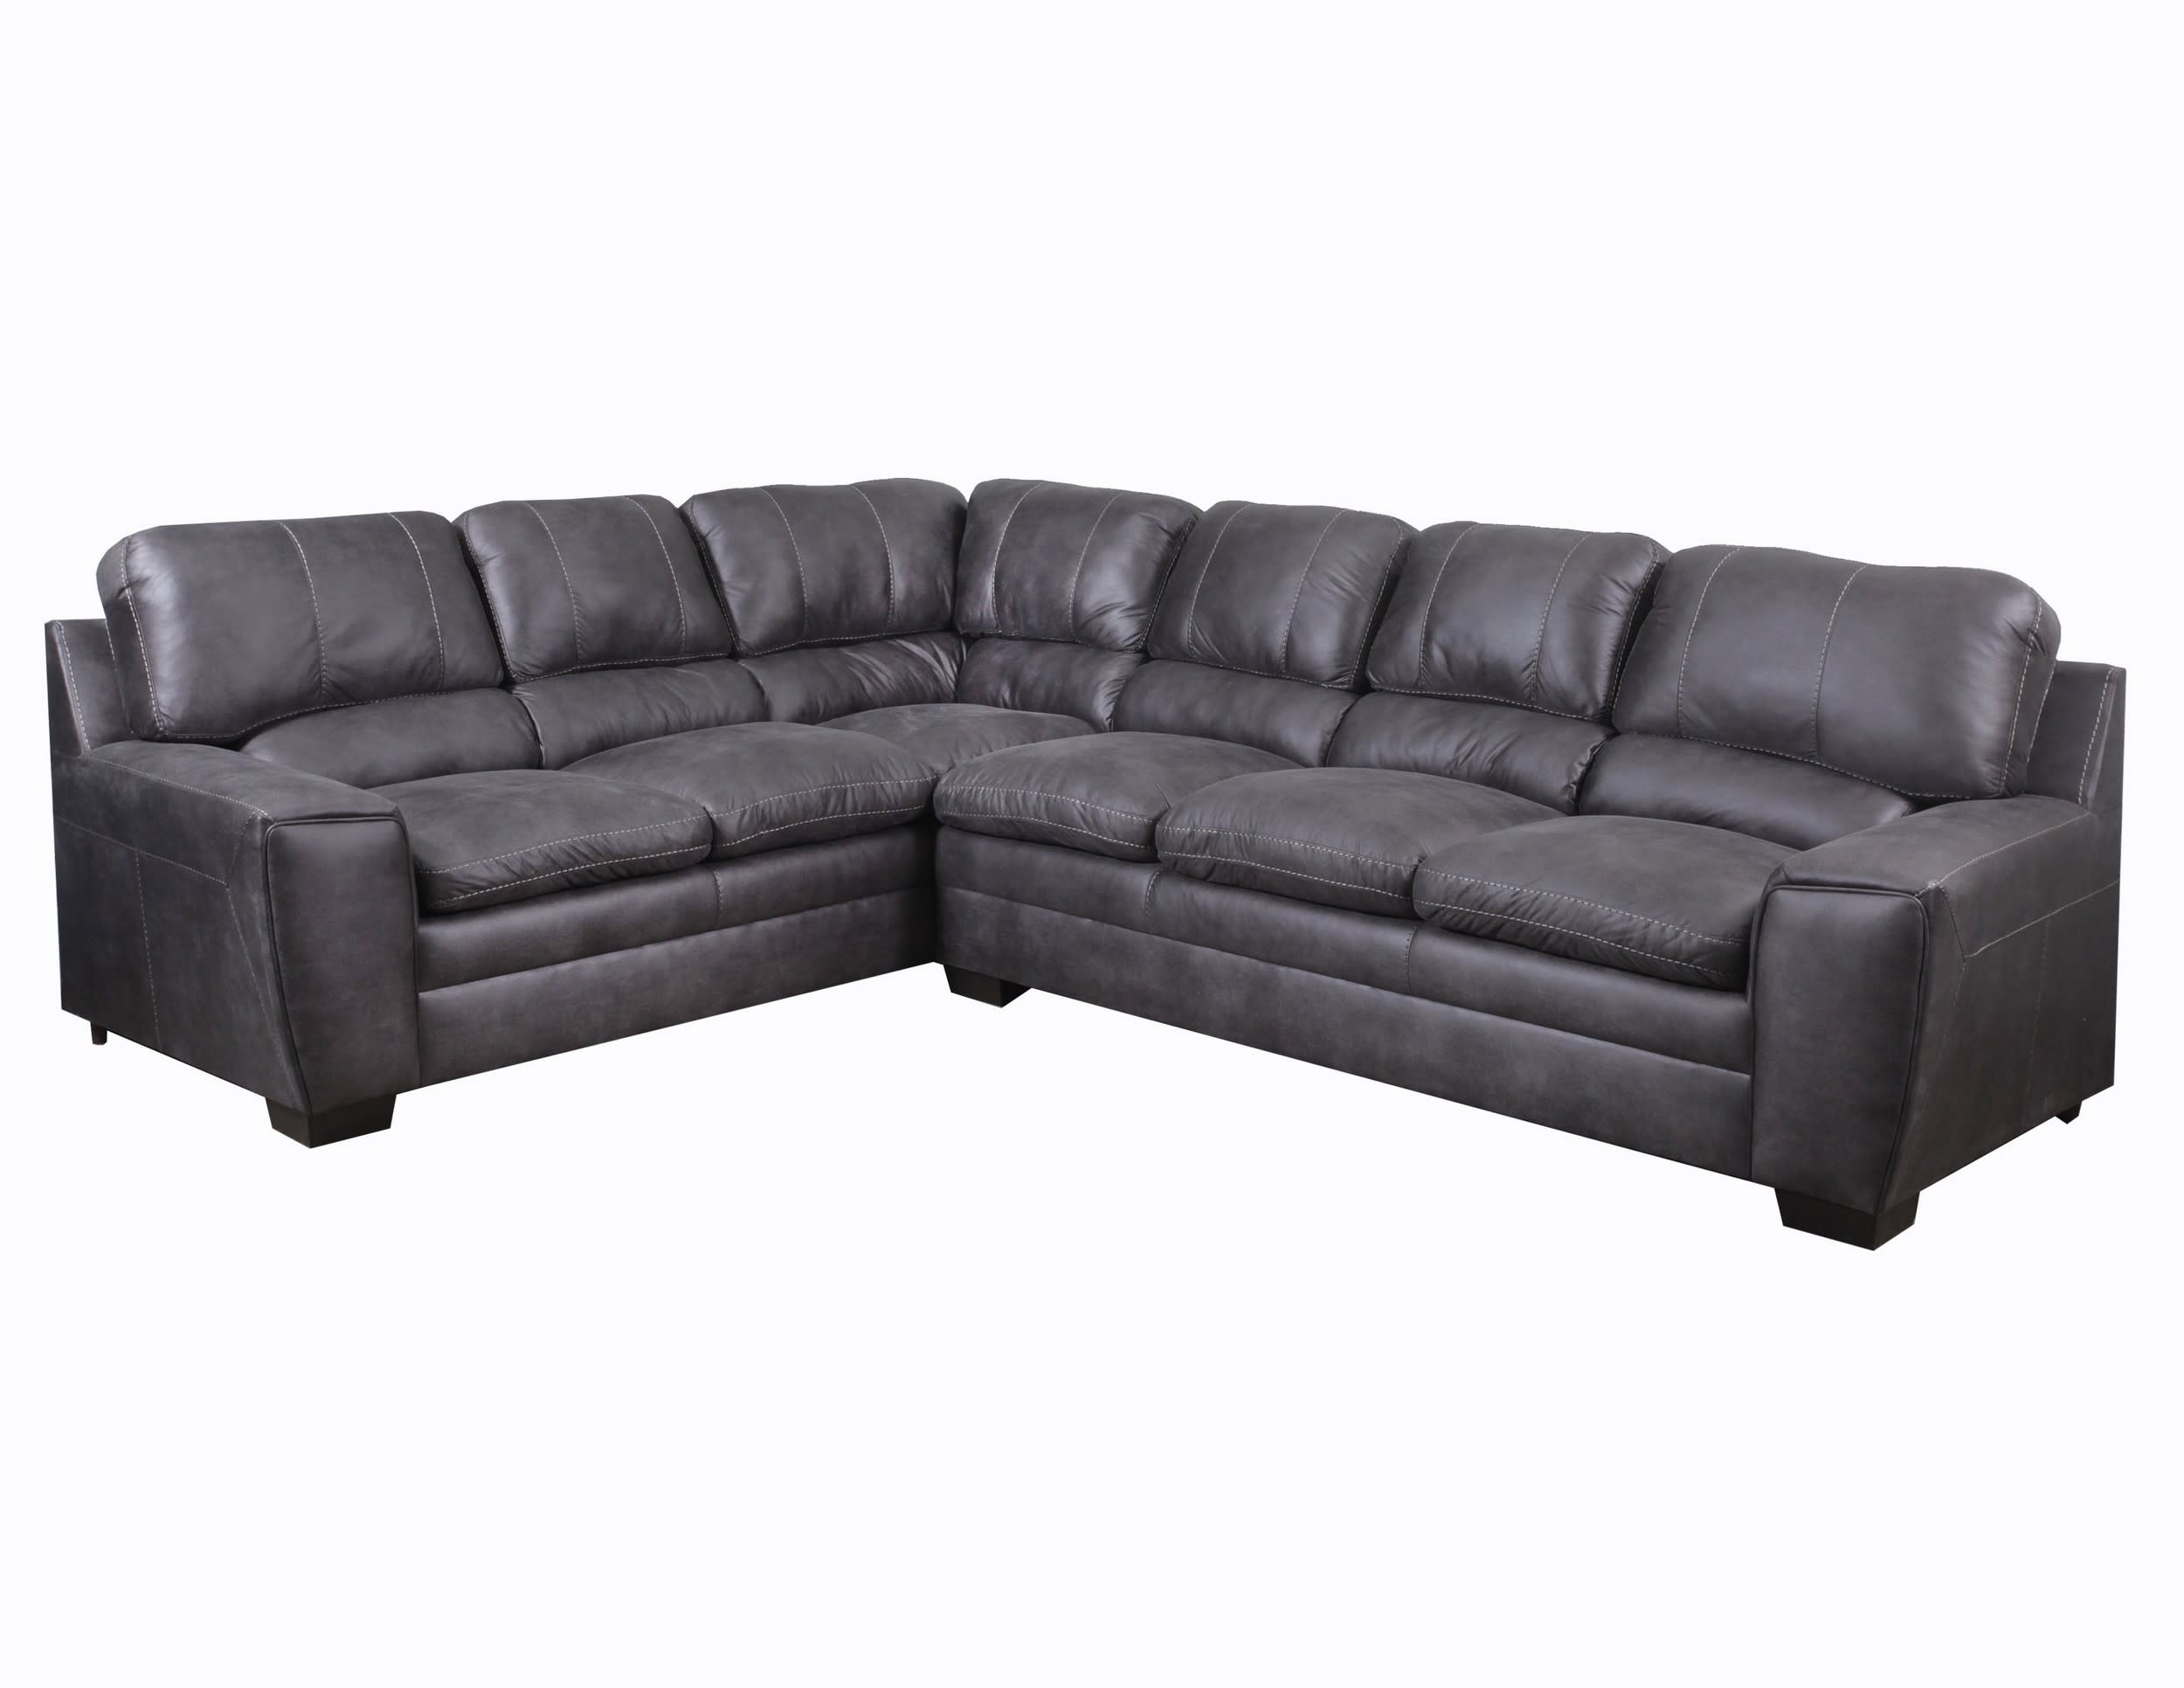 Gentil Shiloh Granite 2 Piece Sectional Sofa